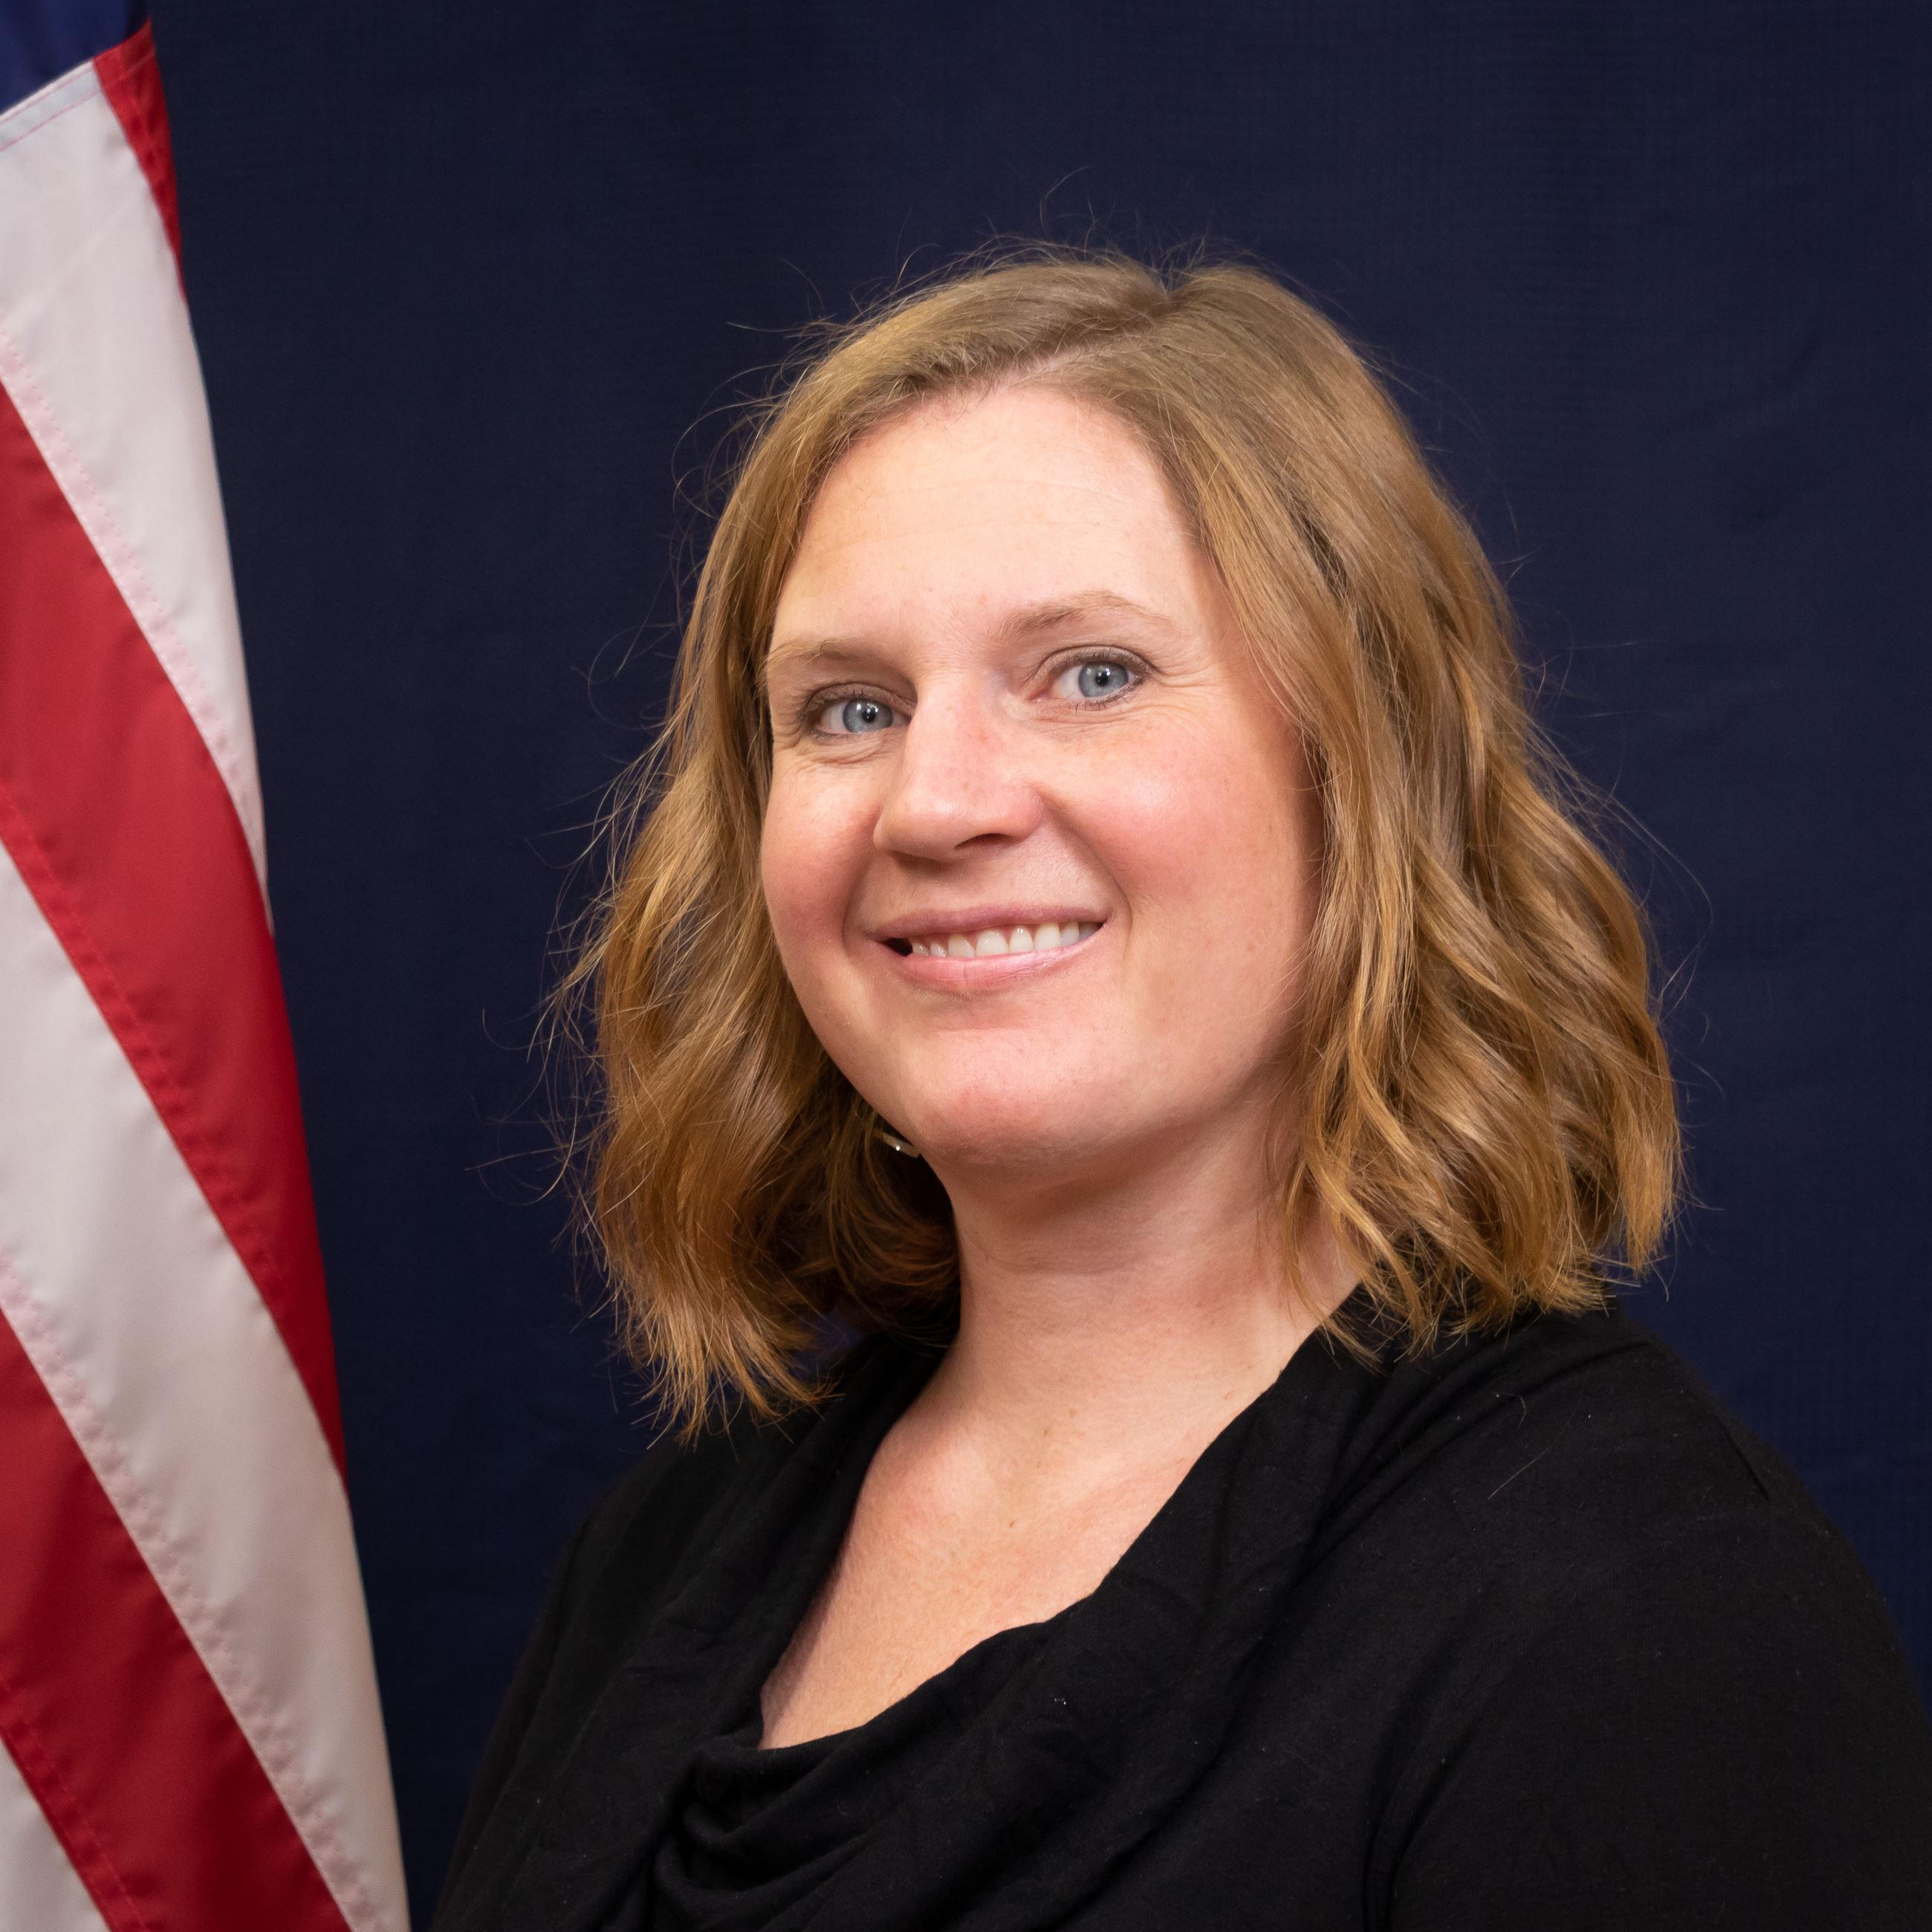 Photo of Becky Norton, Ward 3 representative on the City Council